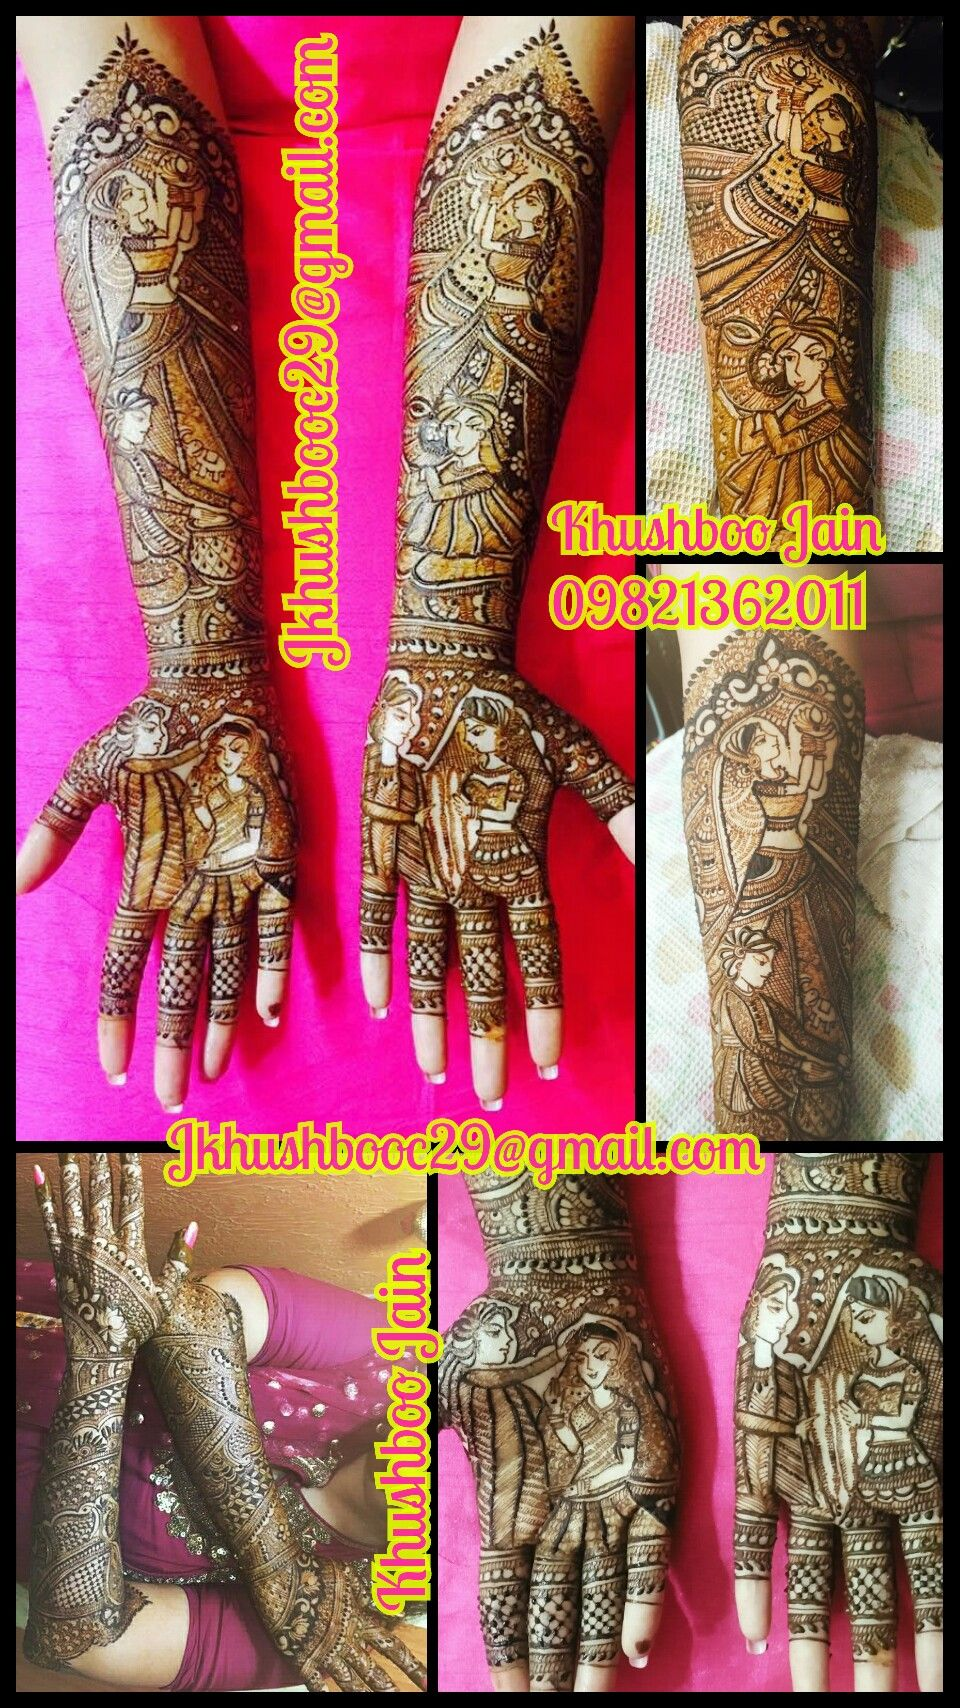 Pin by Khushboo Jain on Khushboo Mehandi Henna hand